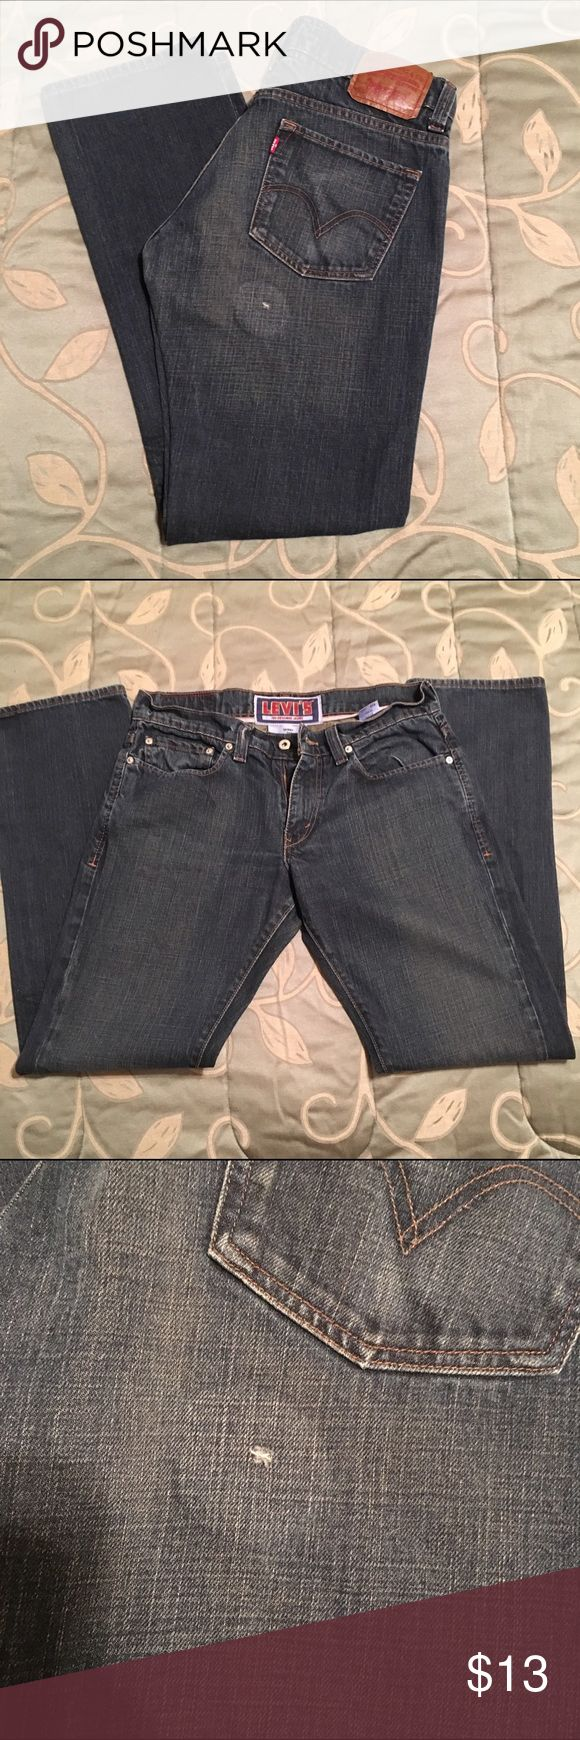 Levi's Men's 511 Skinny Jeans 👖 Men's Levi's 511 Skinny Jeans 👖 Small hole on right side below pocket. There's an iron on patch inside, hence the circle pattern. Still in great shape otherwise. Could easily be cut off into booty shorts. 33 x 32 Levi's Jeans Skinny